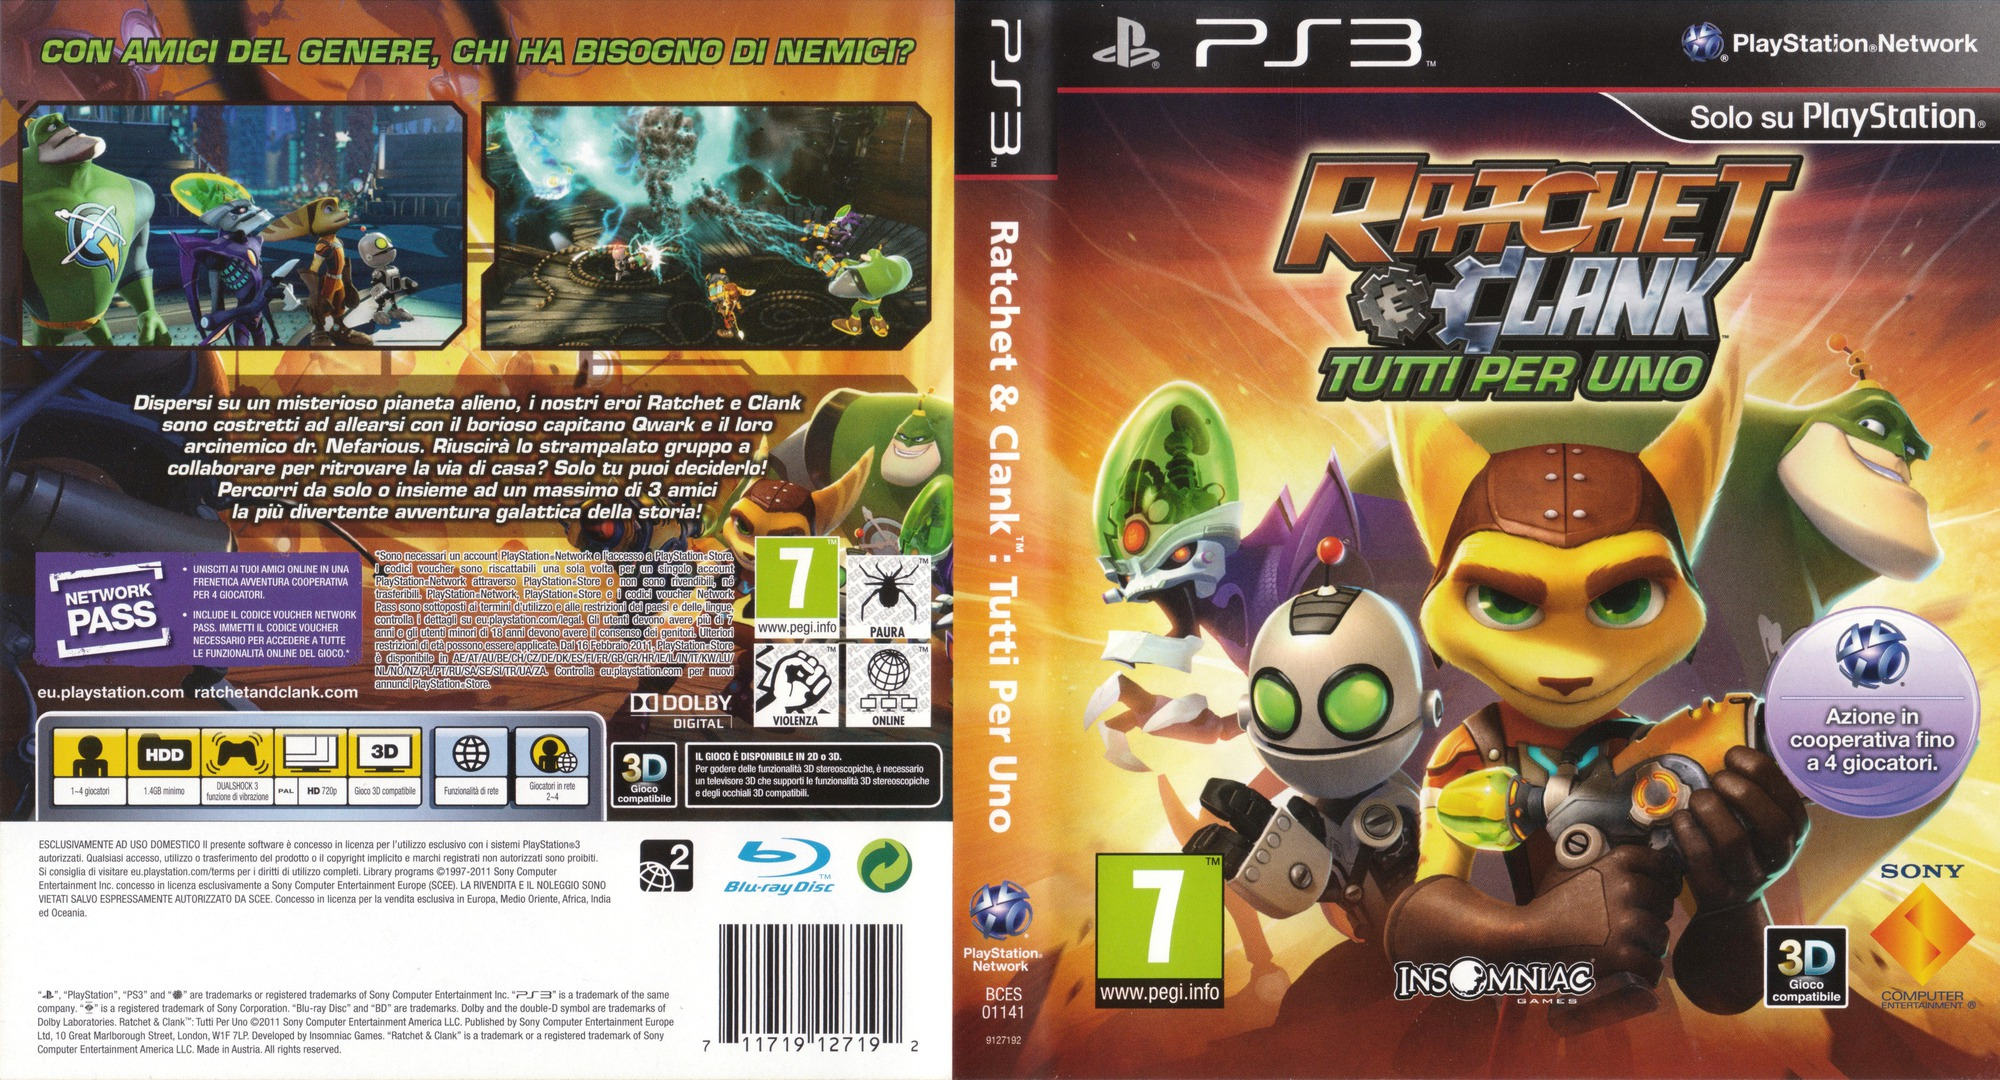 Ratchet & Clank: Tutti per uno PS3 coverfullHQ (BCES01141)